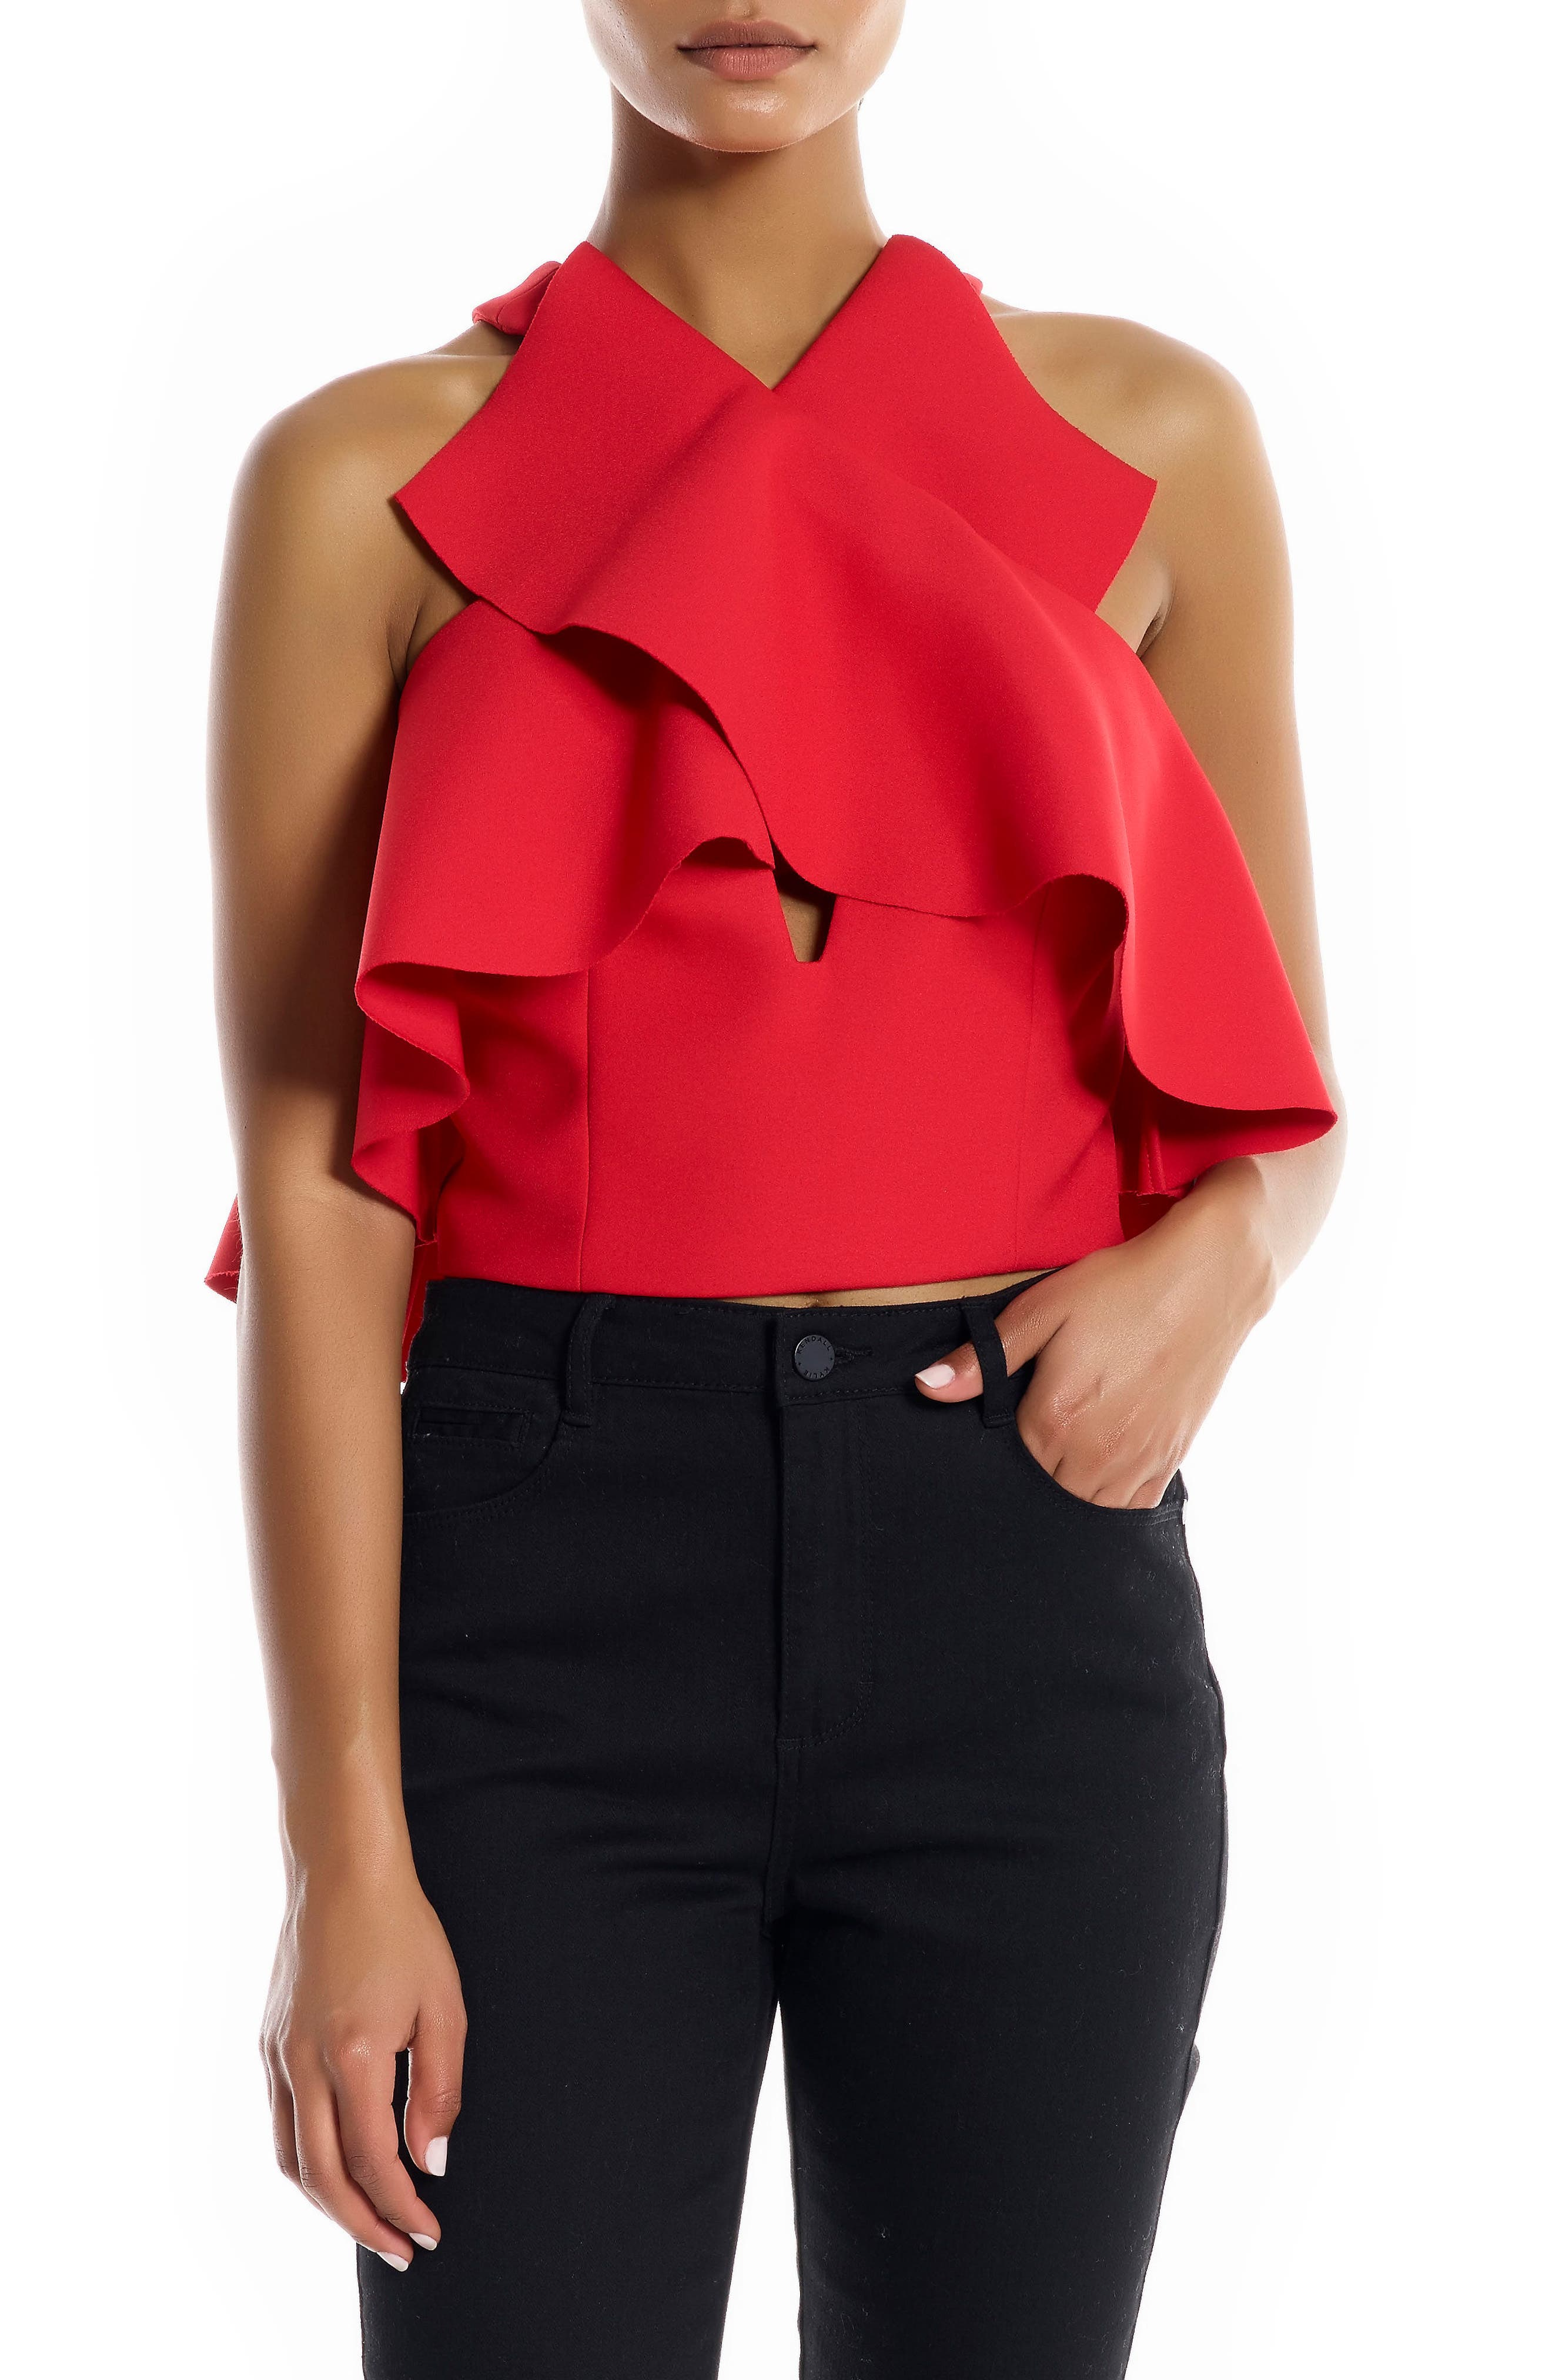 Main Image - KENDALL + KYLIE Overlap Ruffle Crop Top